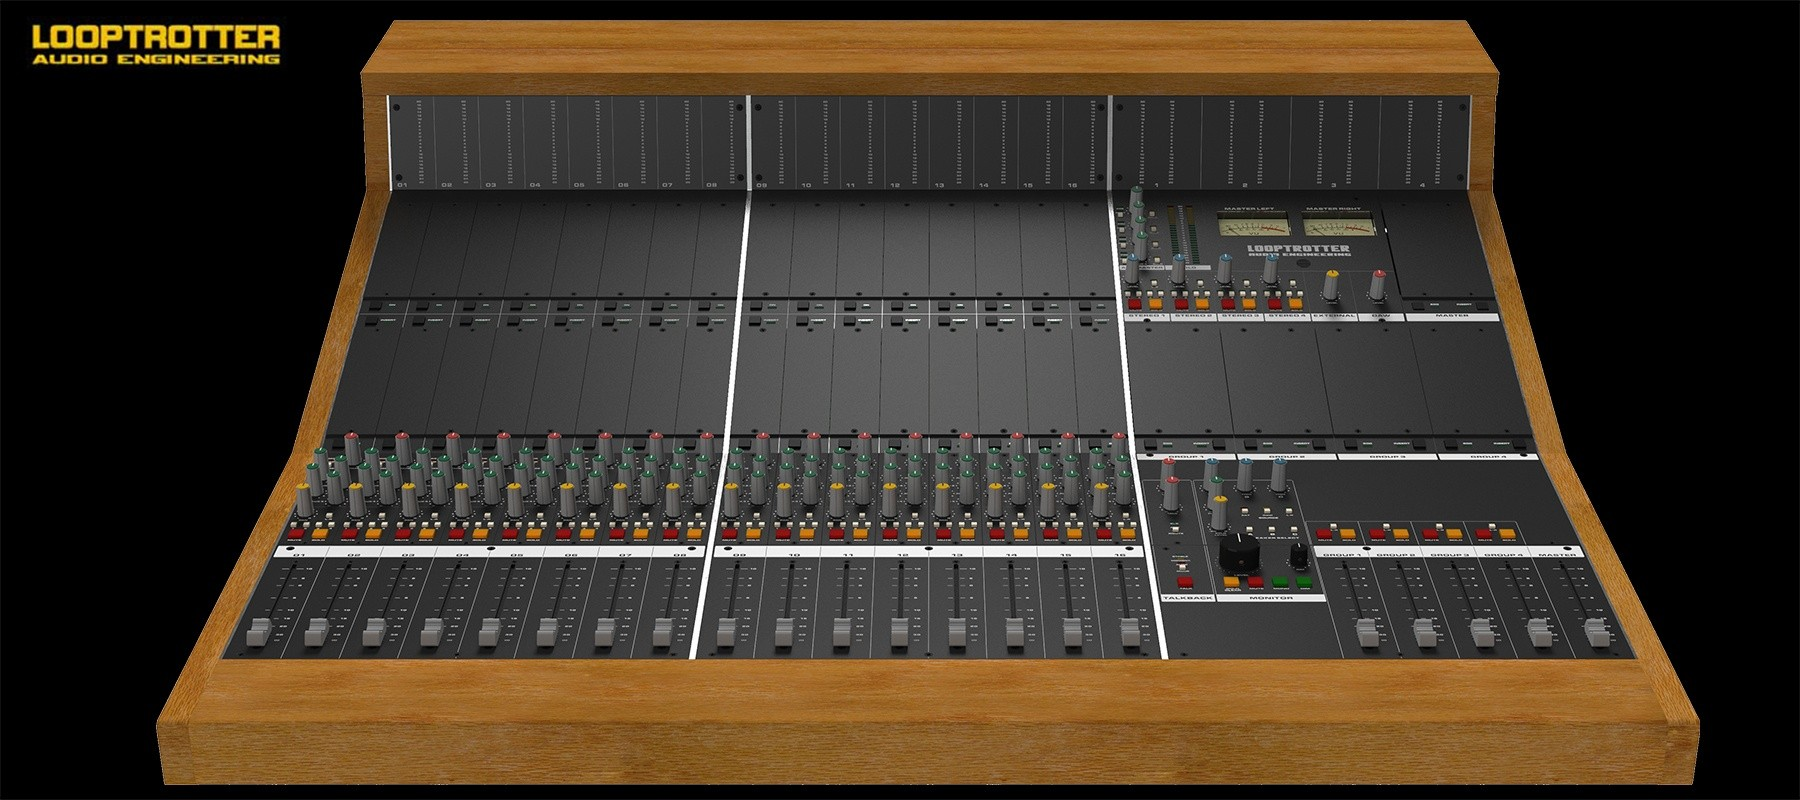 Looptrotter Modular Console 16 channel